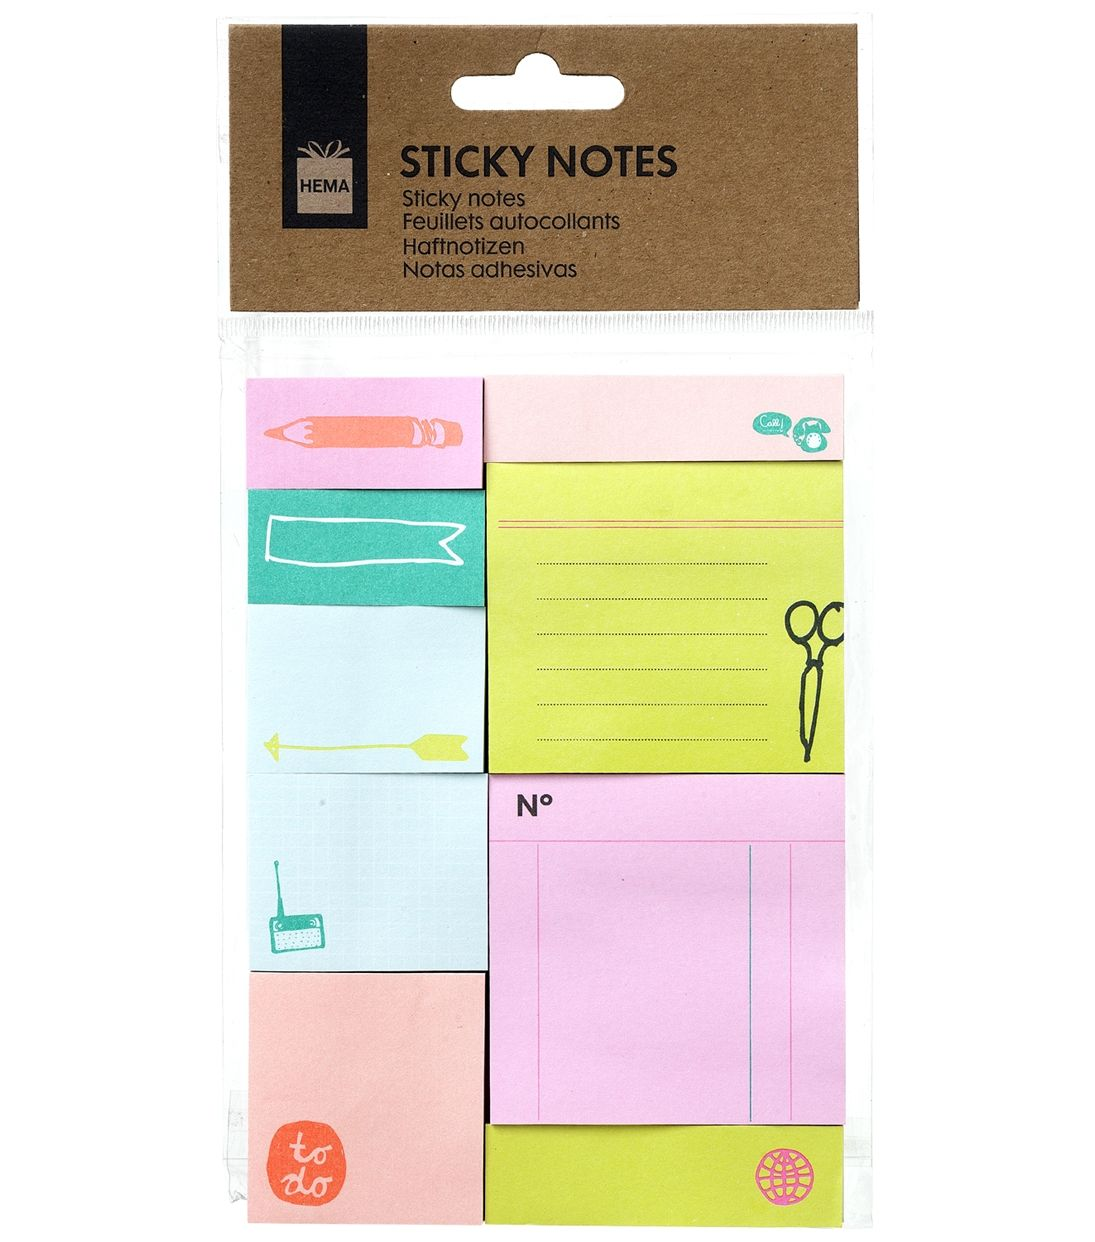 Hema Sticky Notes Online Always Surprisingly Low Prices Sticky Notes Notes Online Notes Organization